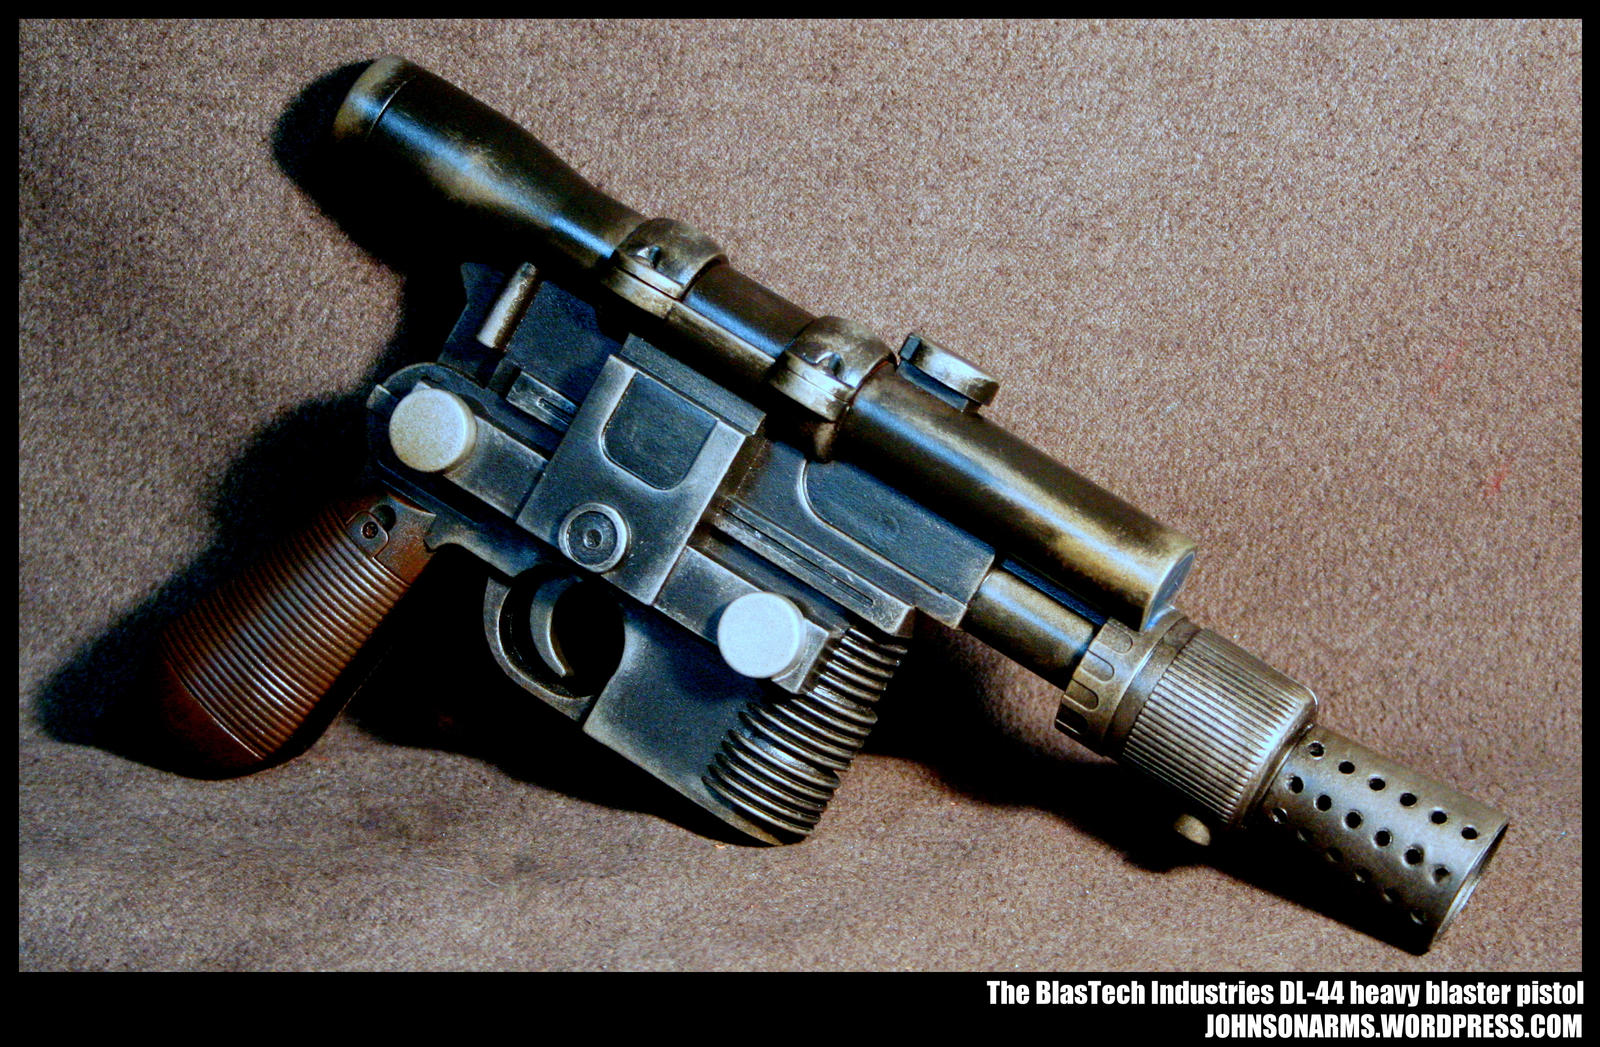 The BlasTech Industries DL-44 heavy blaster pistol by JohnsonArms